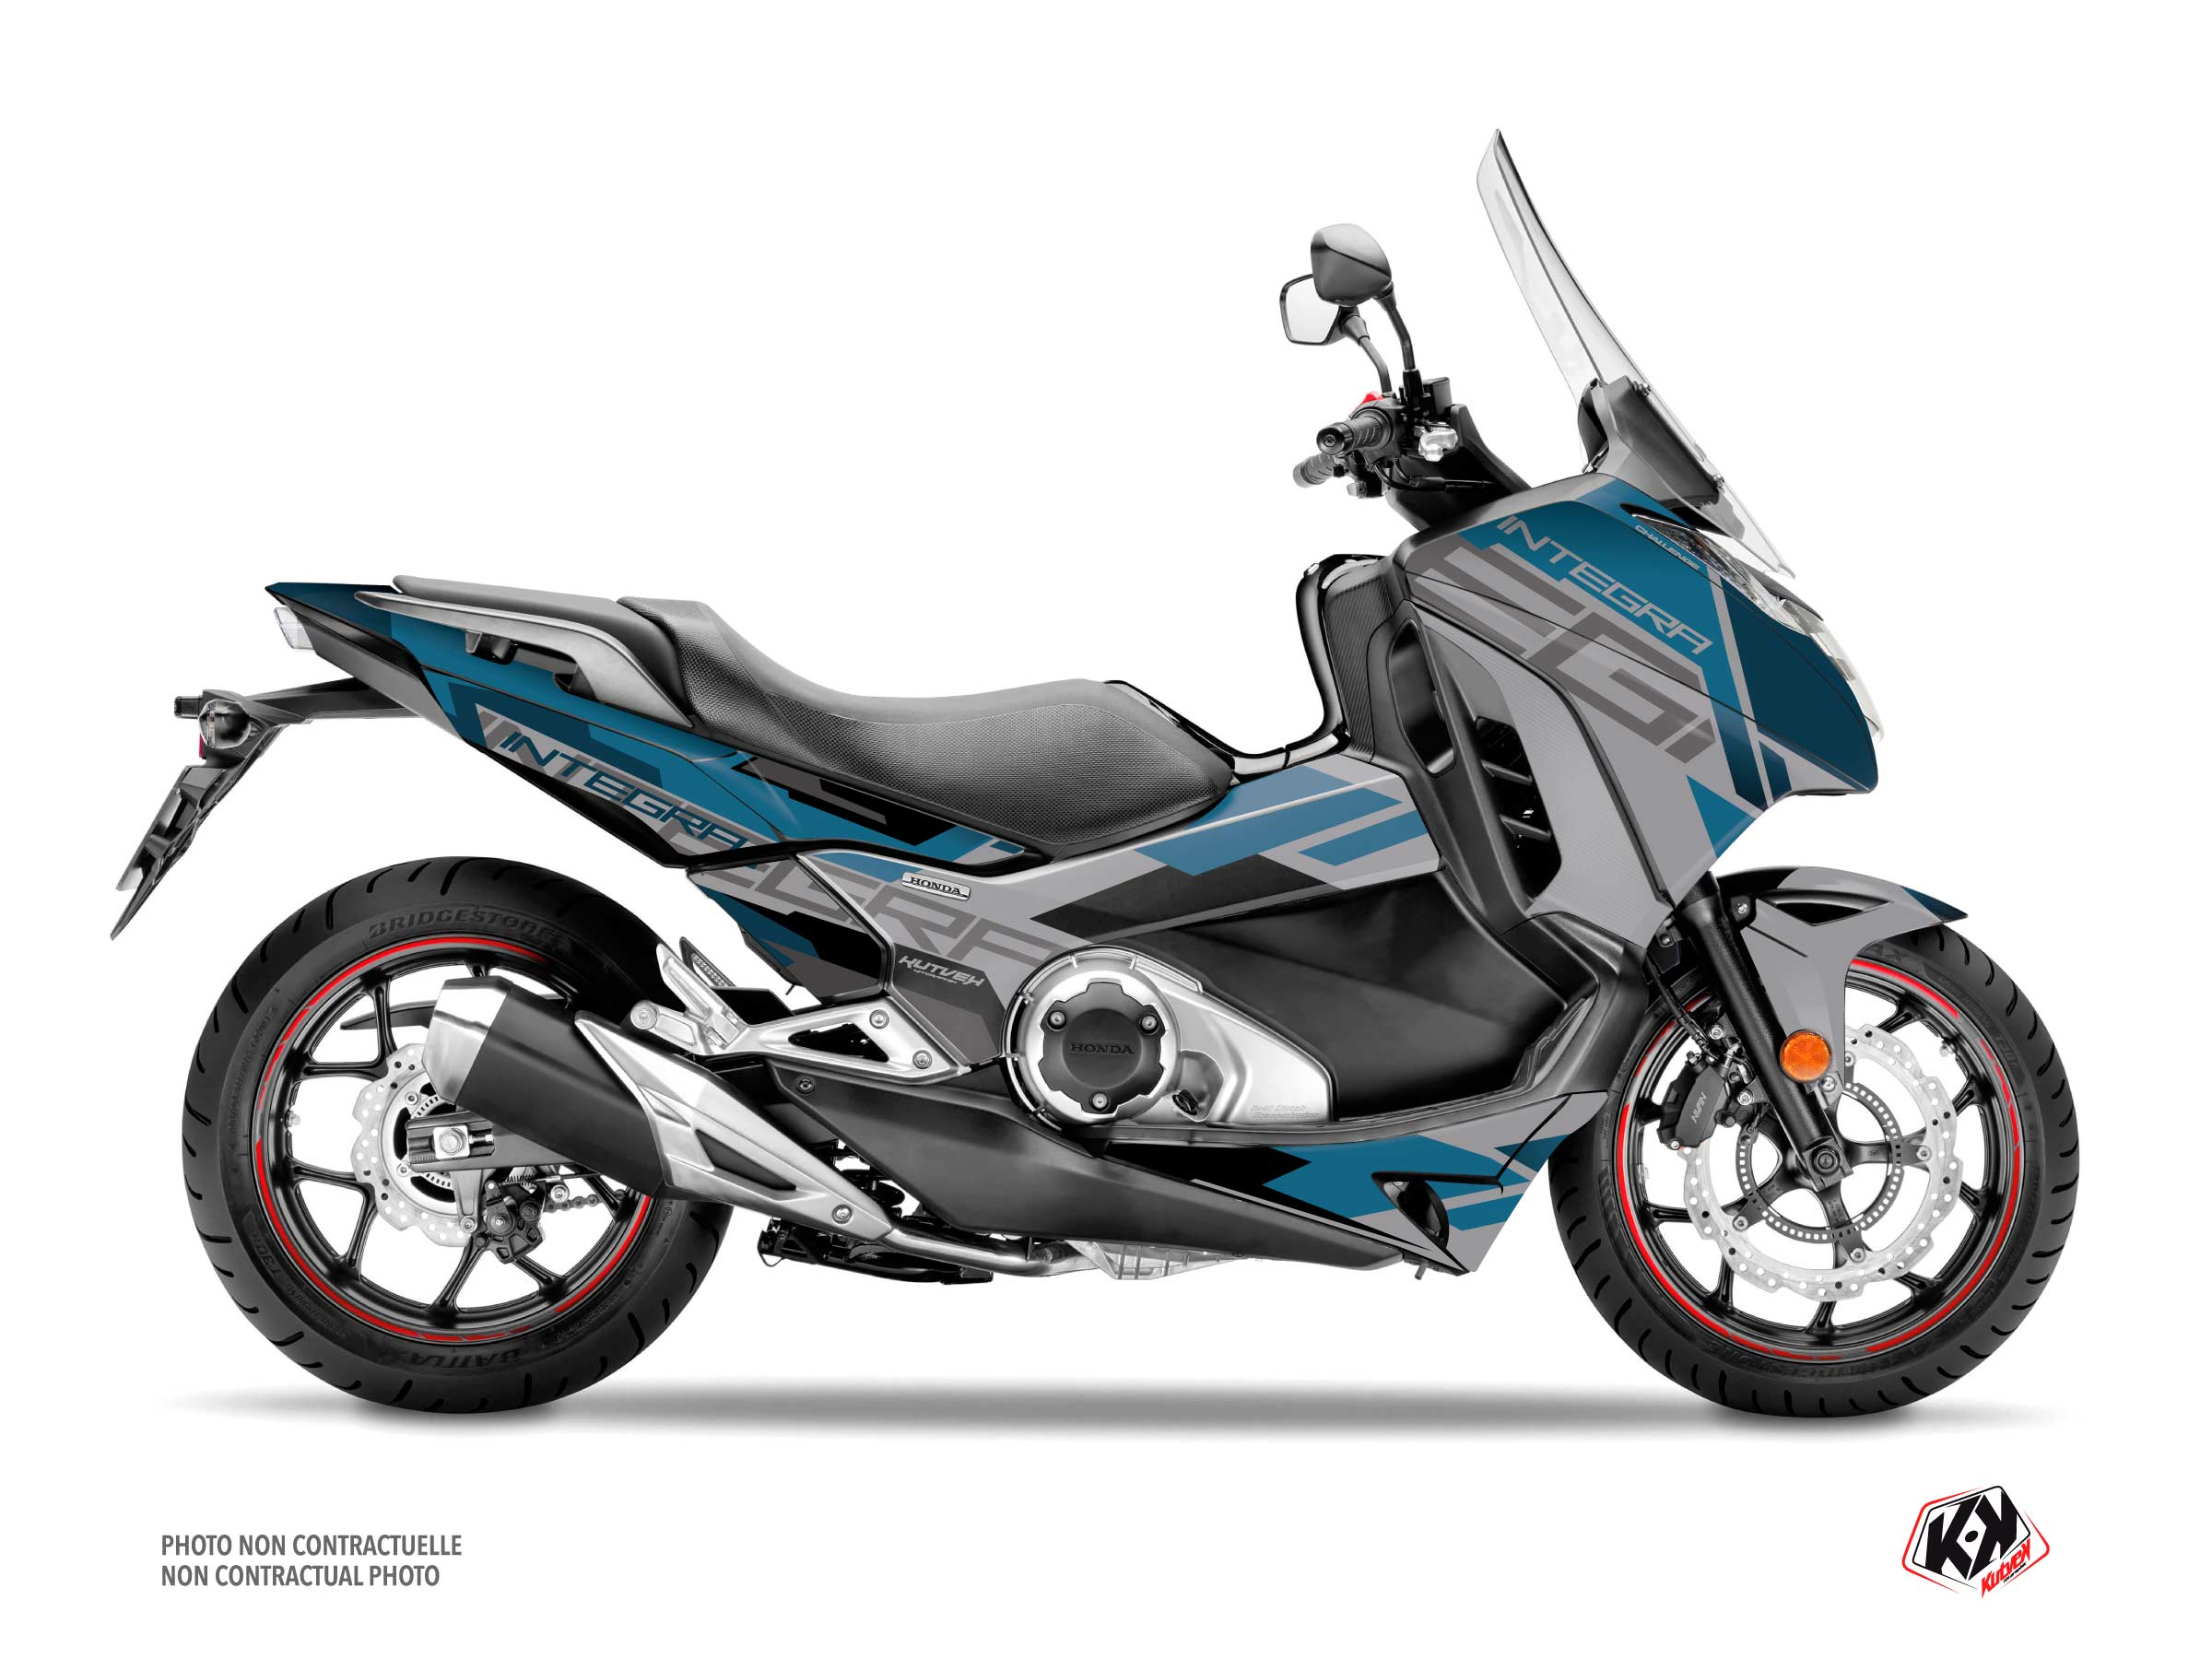 Honda Integra 750 Maxiscooter Challenge Graphic Kit Grey